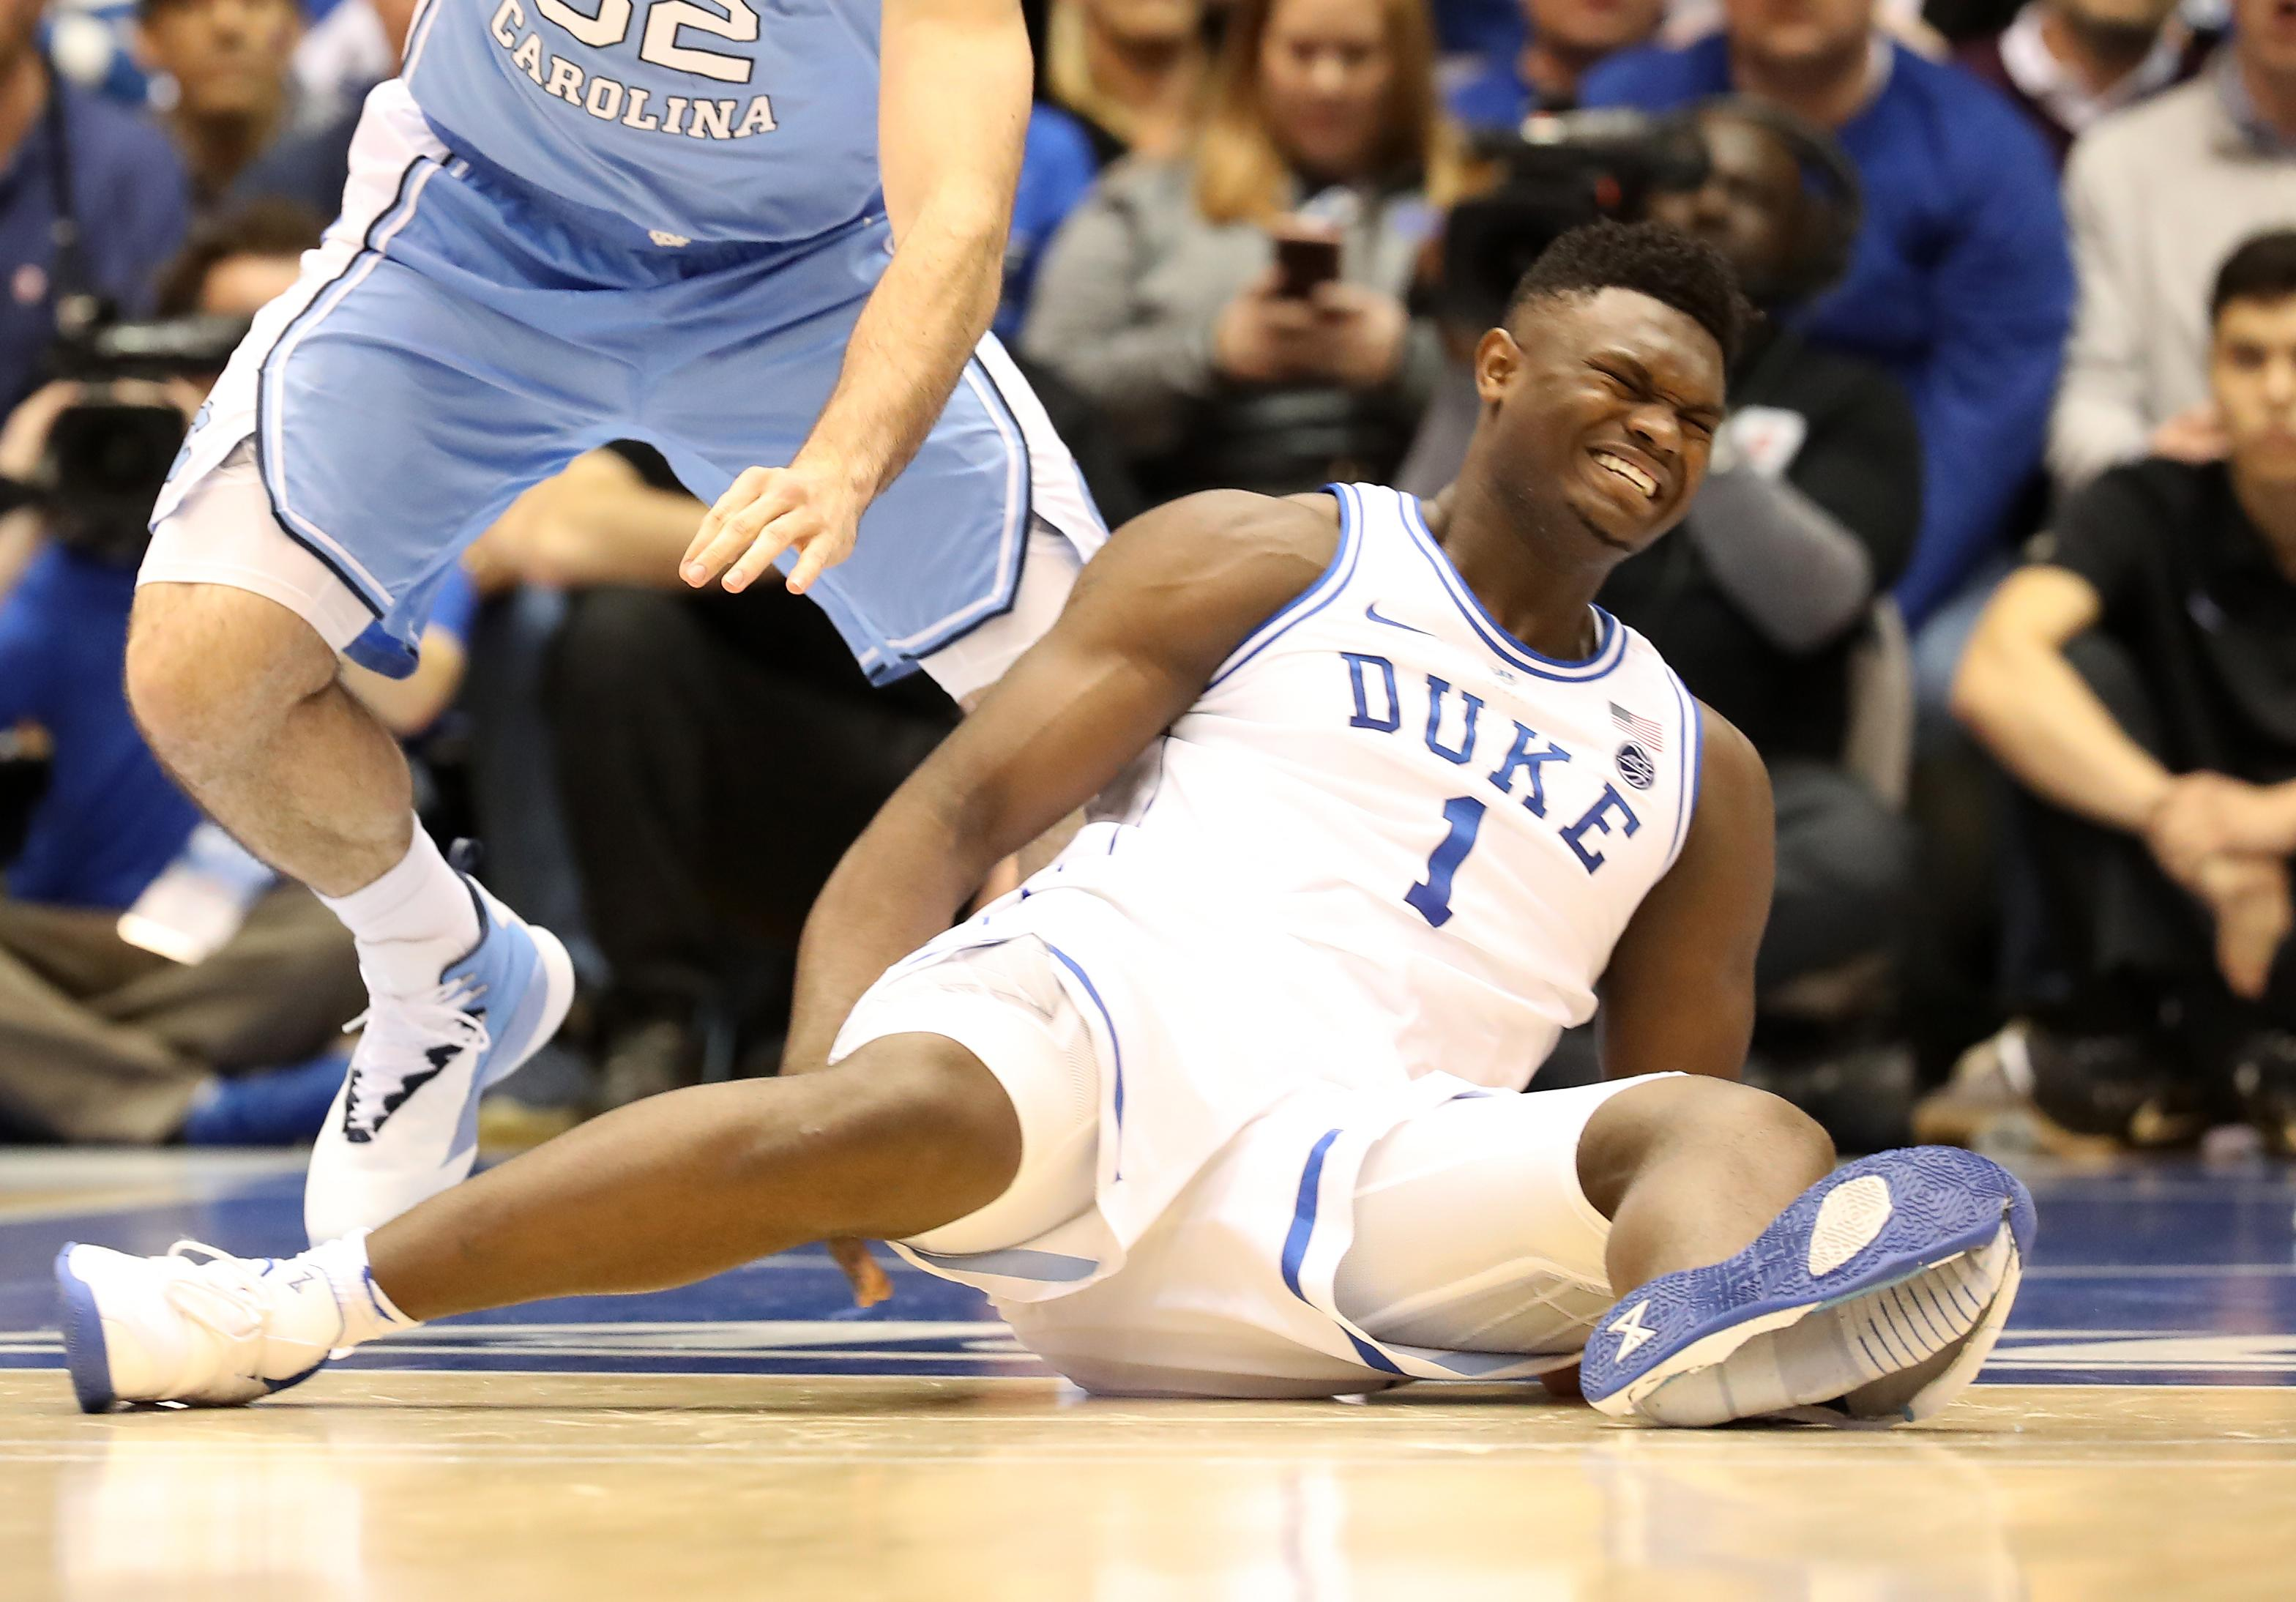 ddb869139e8 Why Zion Williamson still has something to gain by playing again for Duke